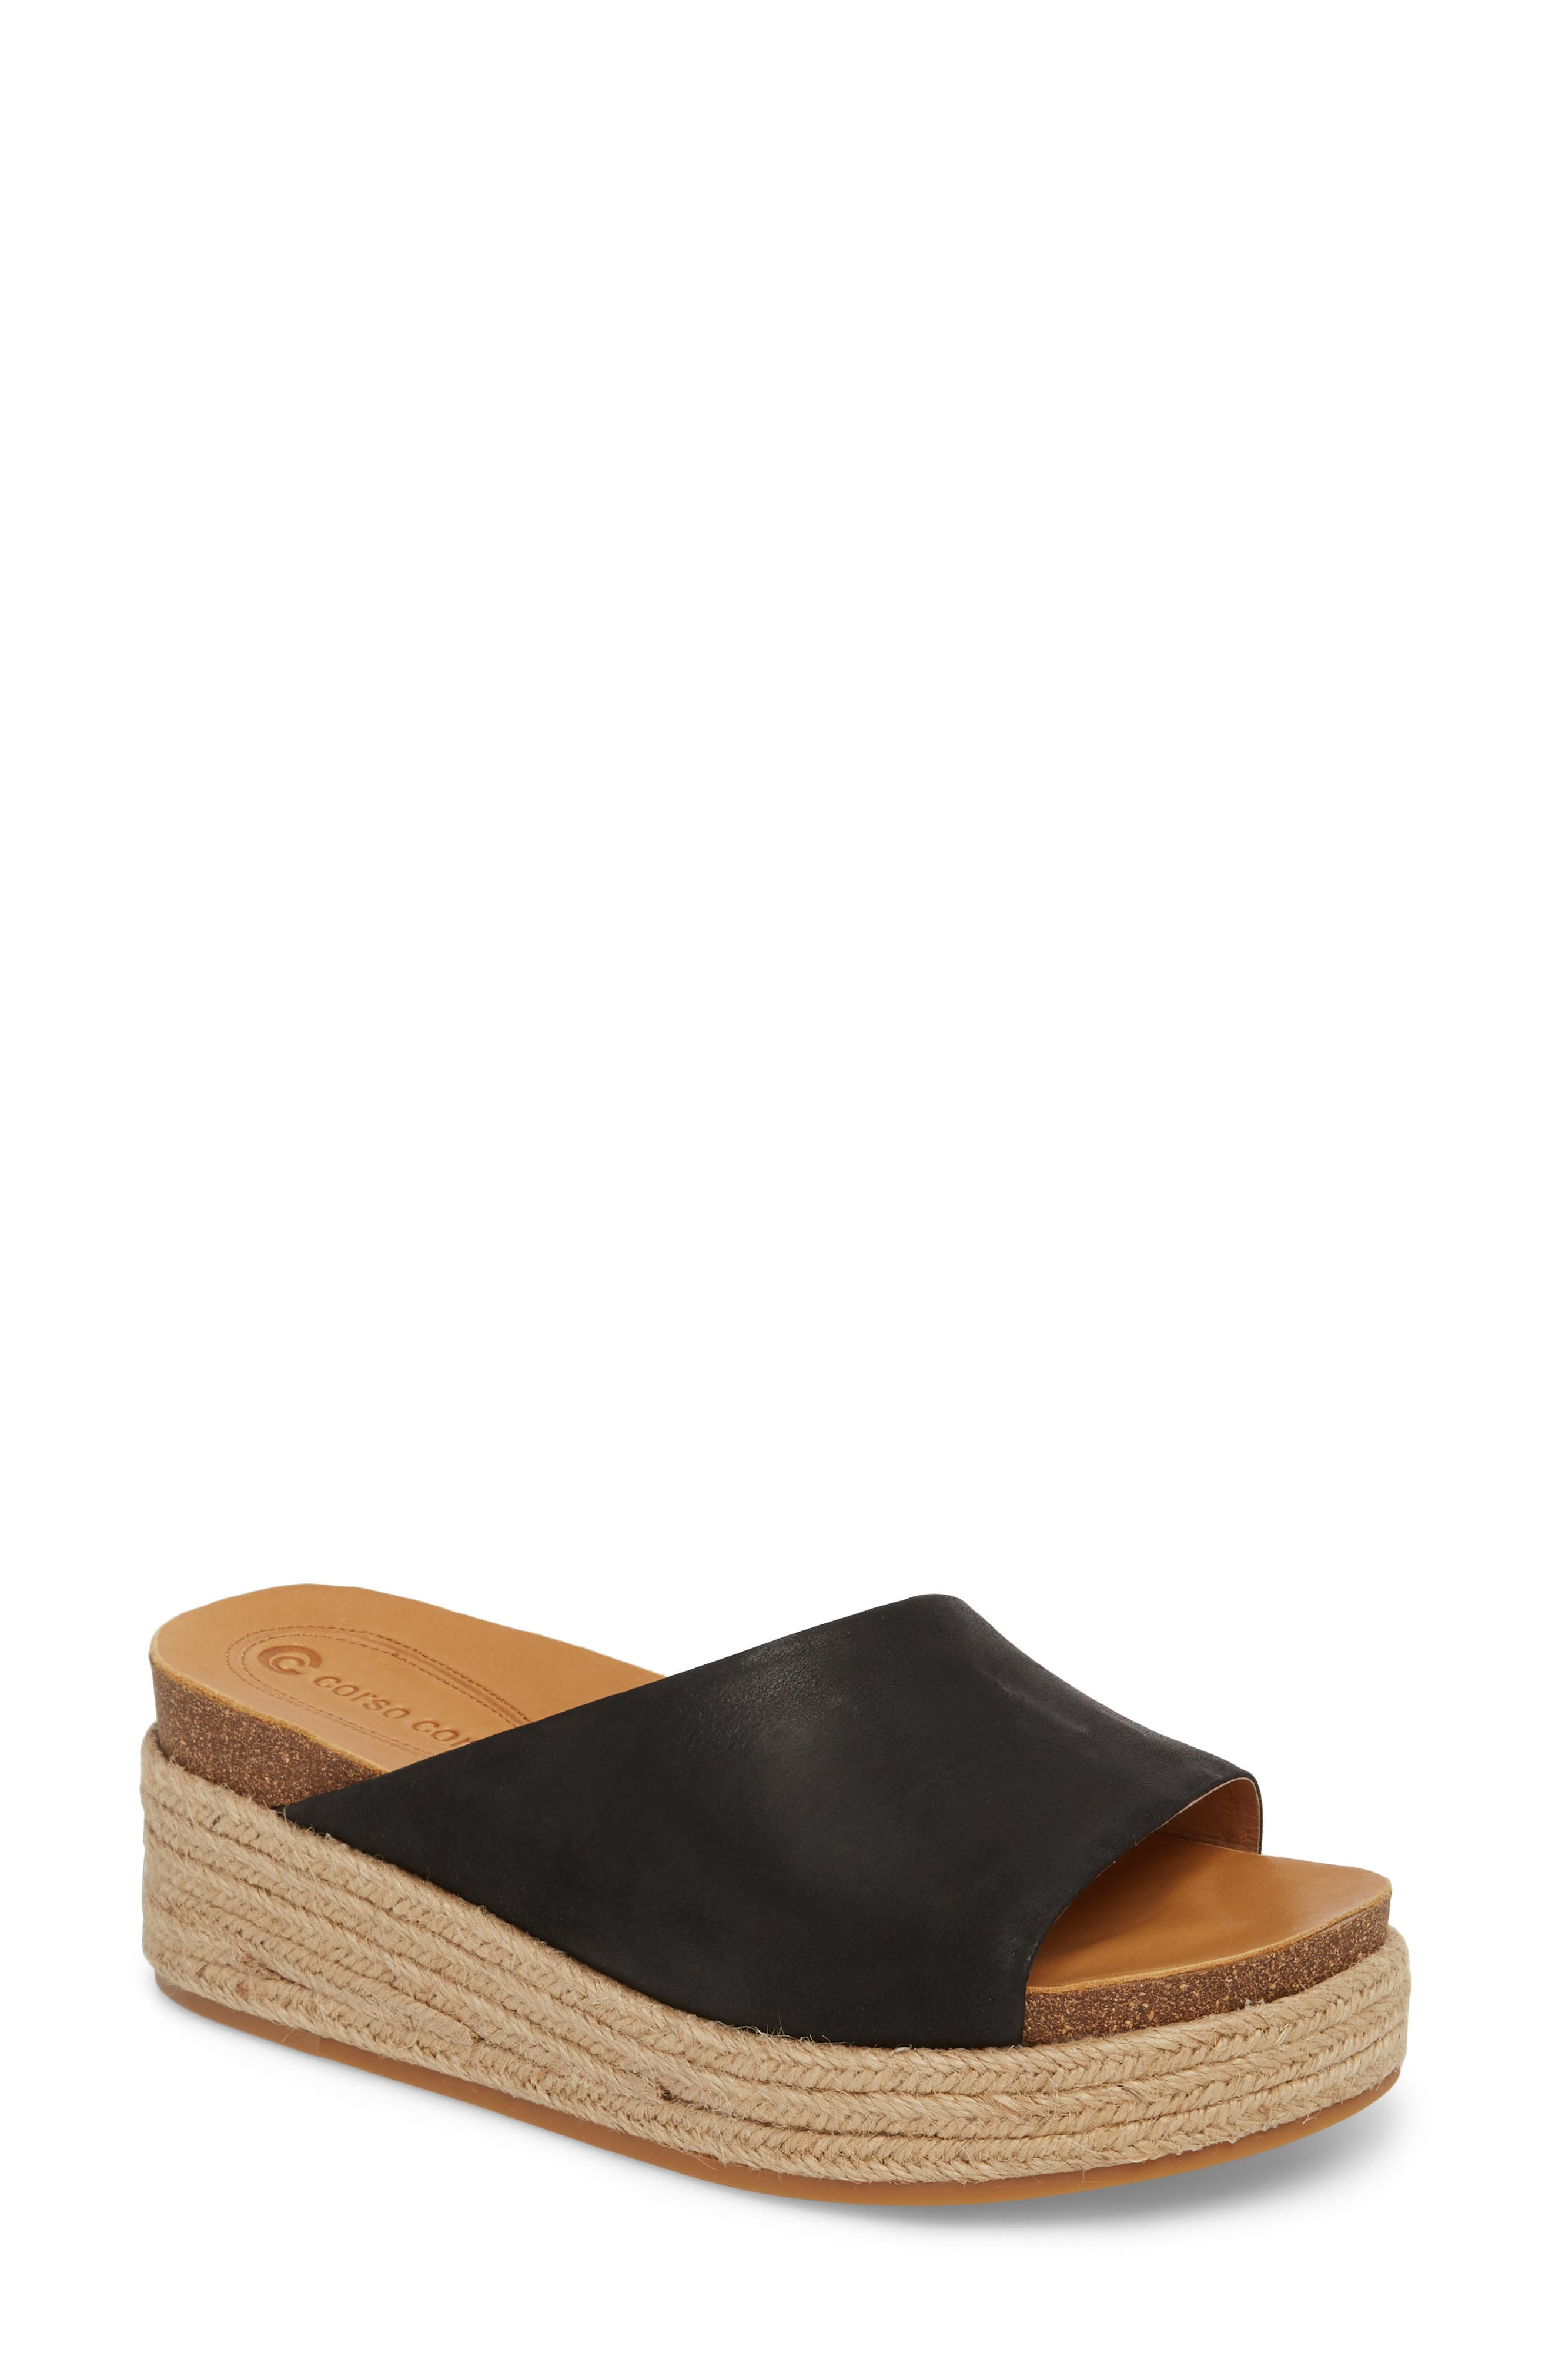 CC CORSO COMO<SUP>®</SUP> Candice Sandal, Main, color, BLACK LEATHER